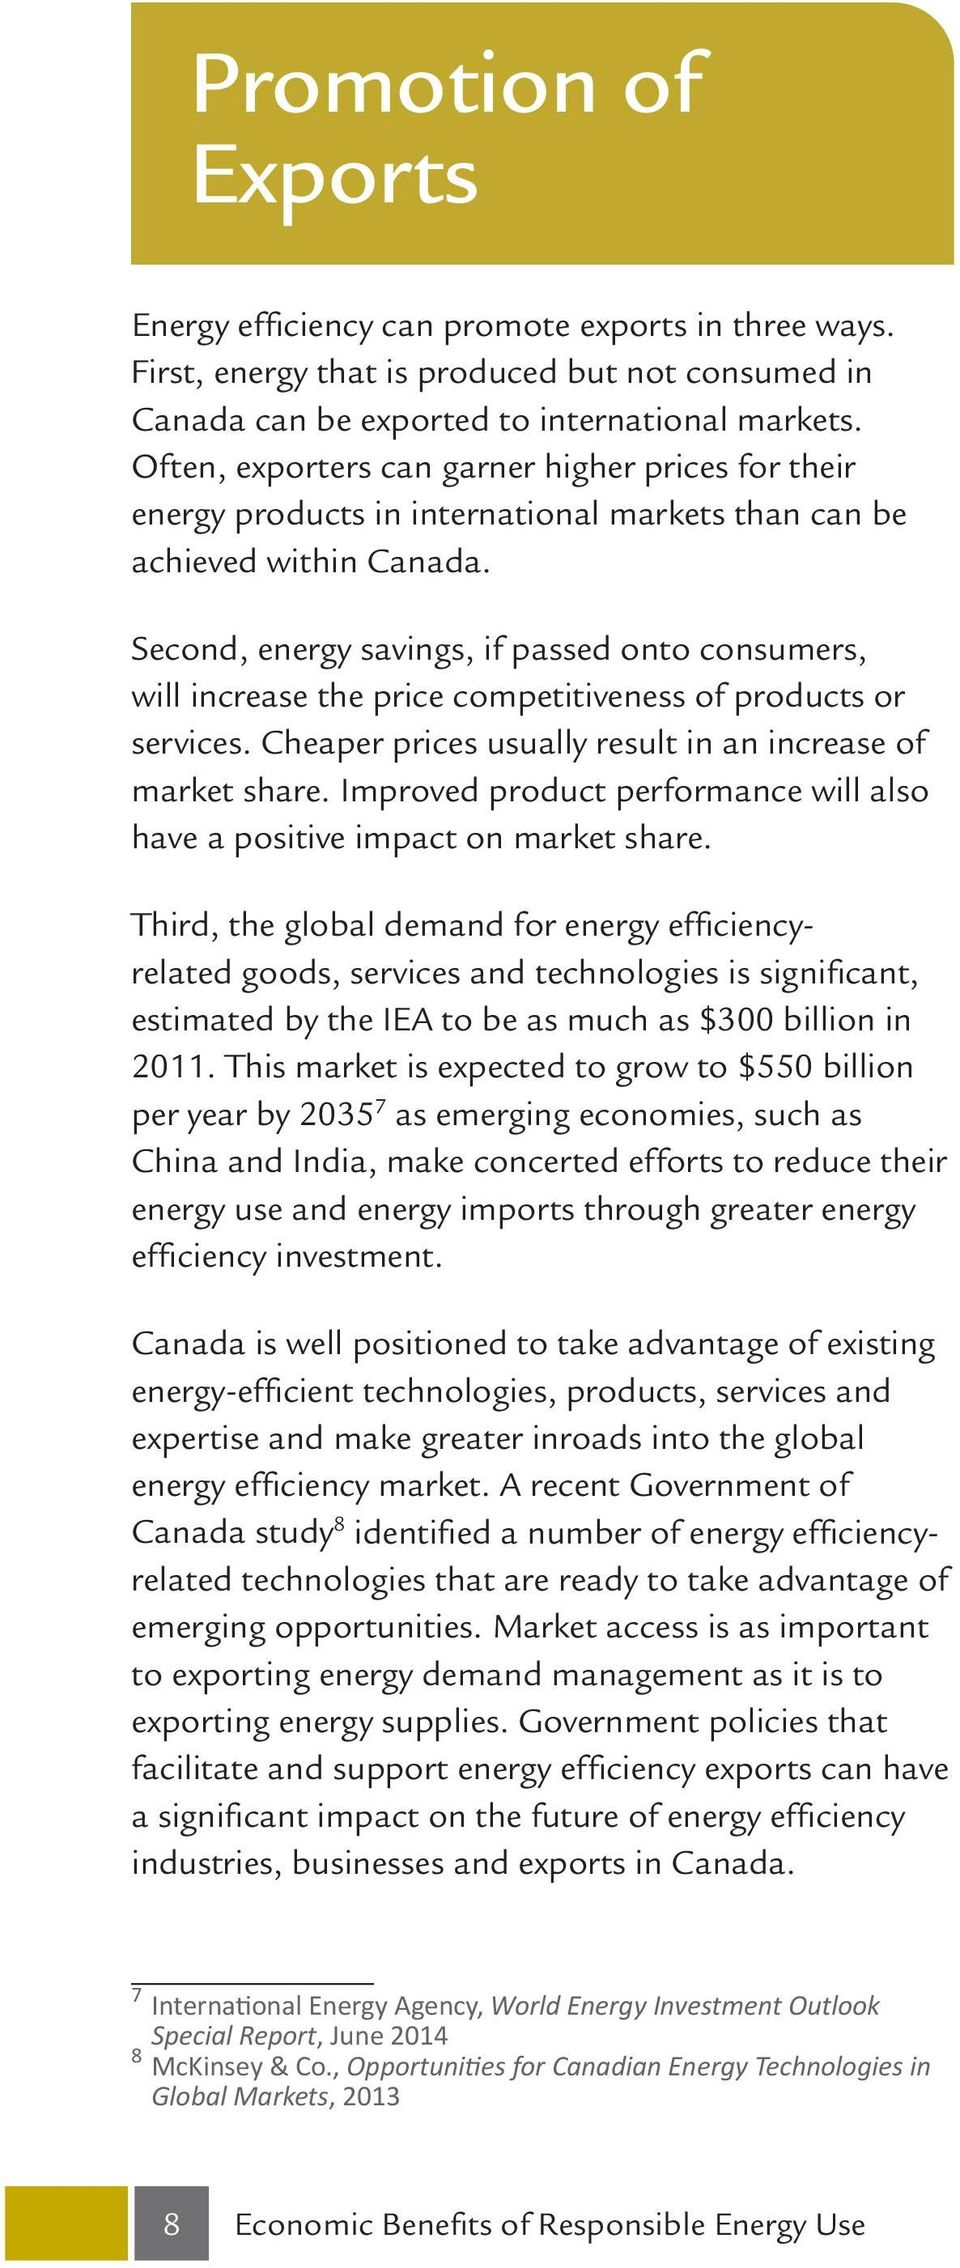 Second, energy savings, if passed onto consumers, will increase the price competitiveness of products or services. Cheaper prices usually result in an increase of market share.